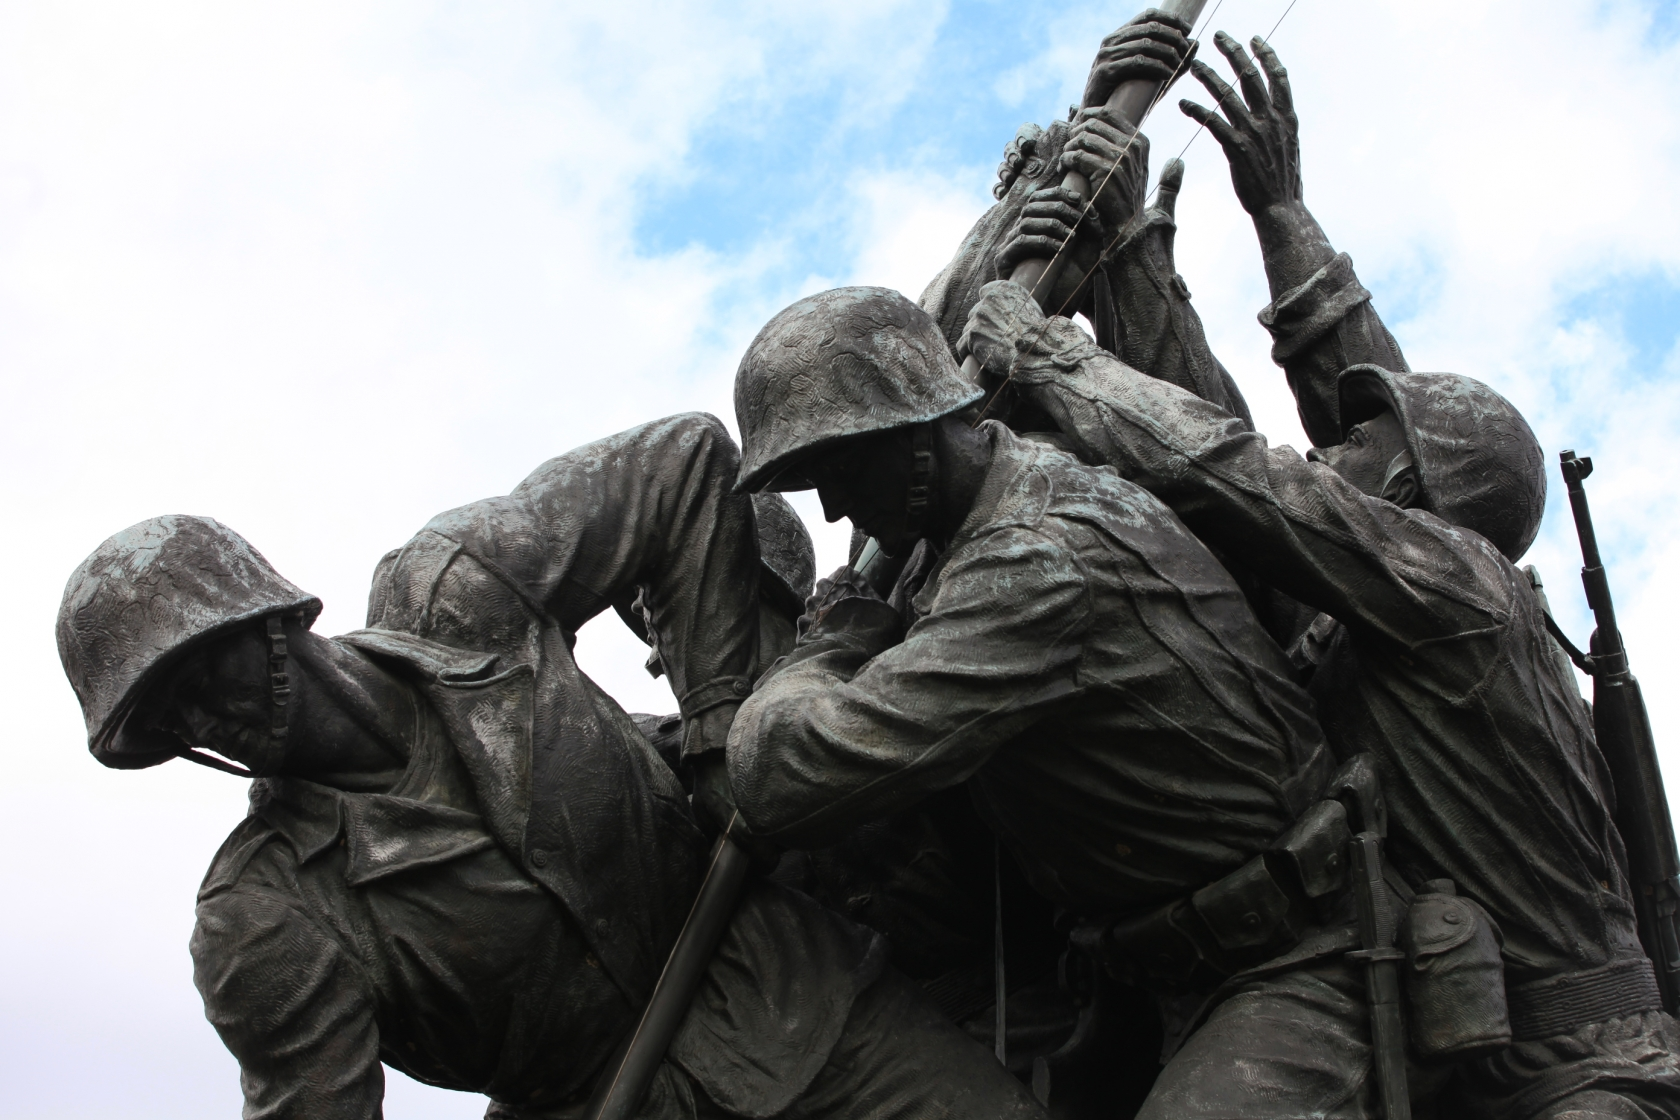 The soldiers lift the flag pole in the U.S. Marine Corps War Memorial